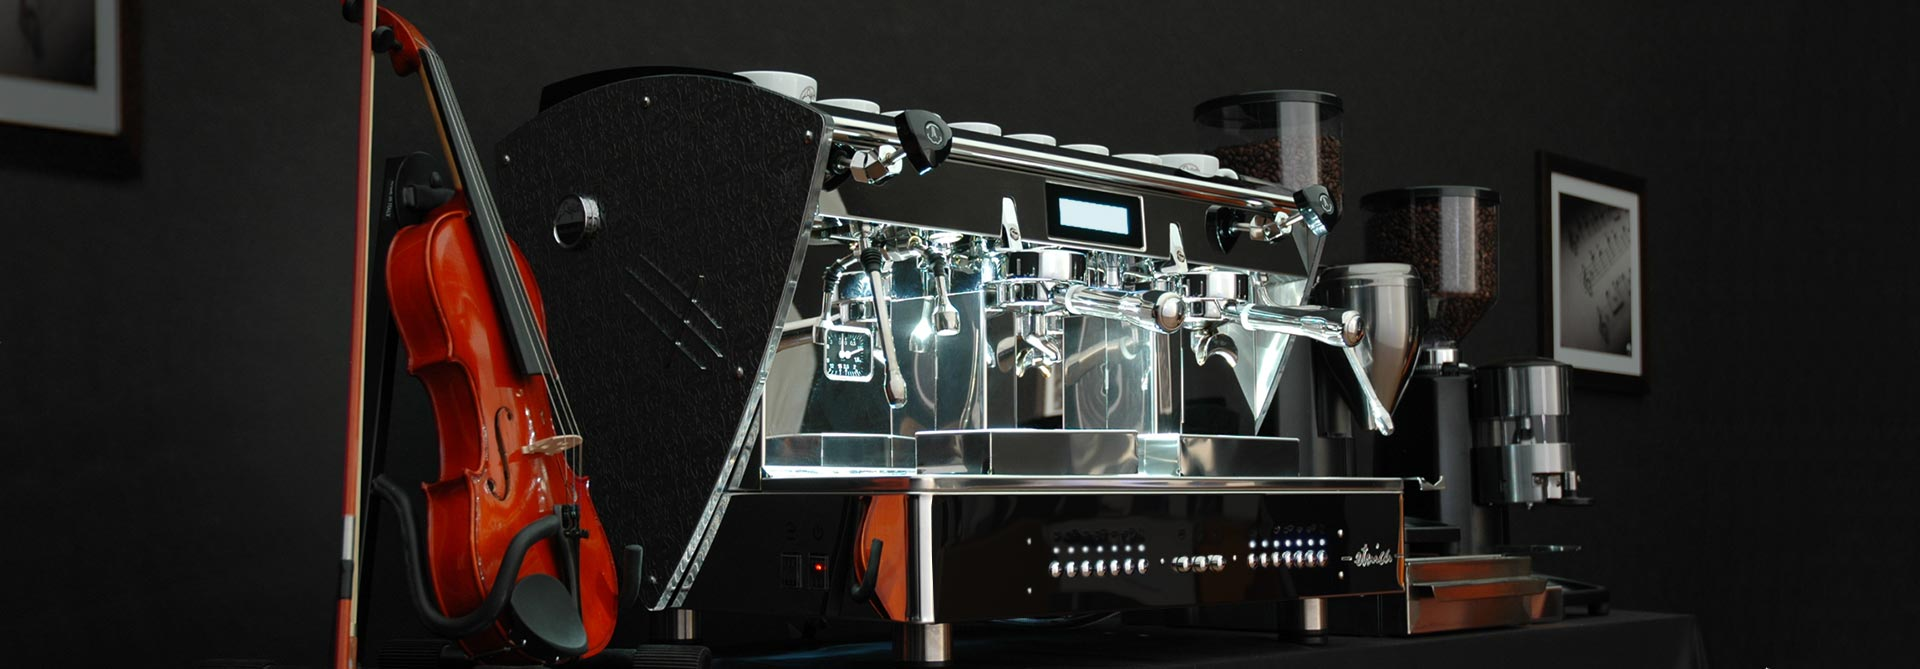 Etnica-Display-2-groups-E61-commercial-Orchestrale-coffee-machine-12